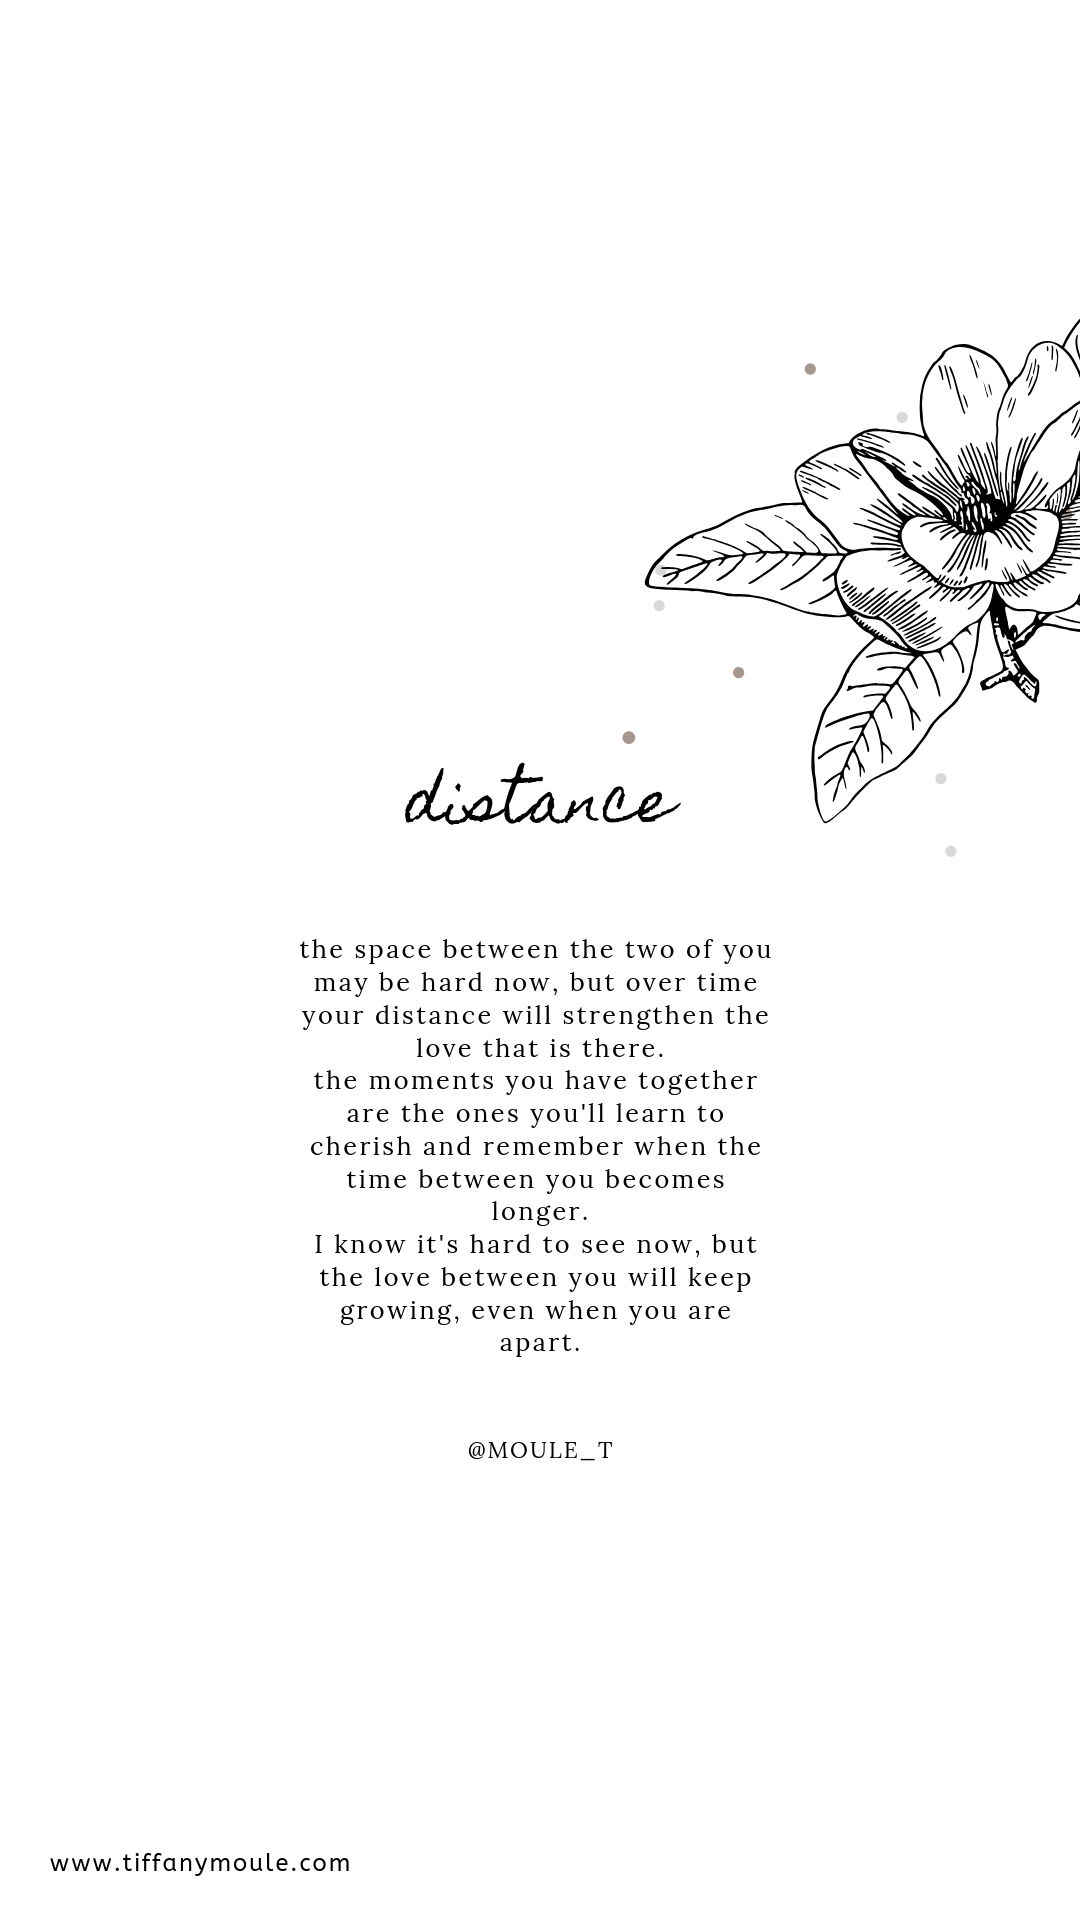 Distance Relationships don't mean you're growing apart, but you're growing together in diff. places